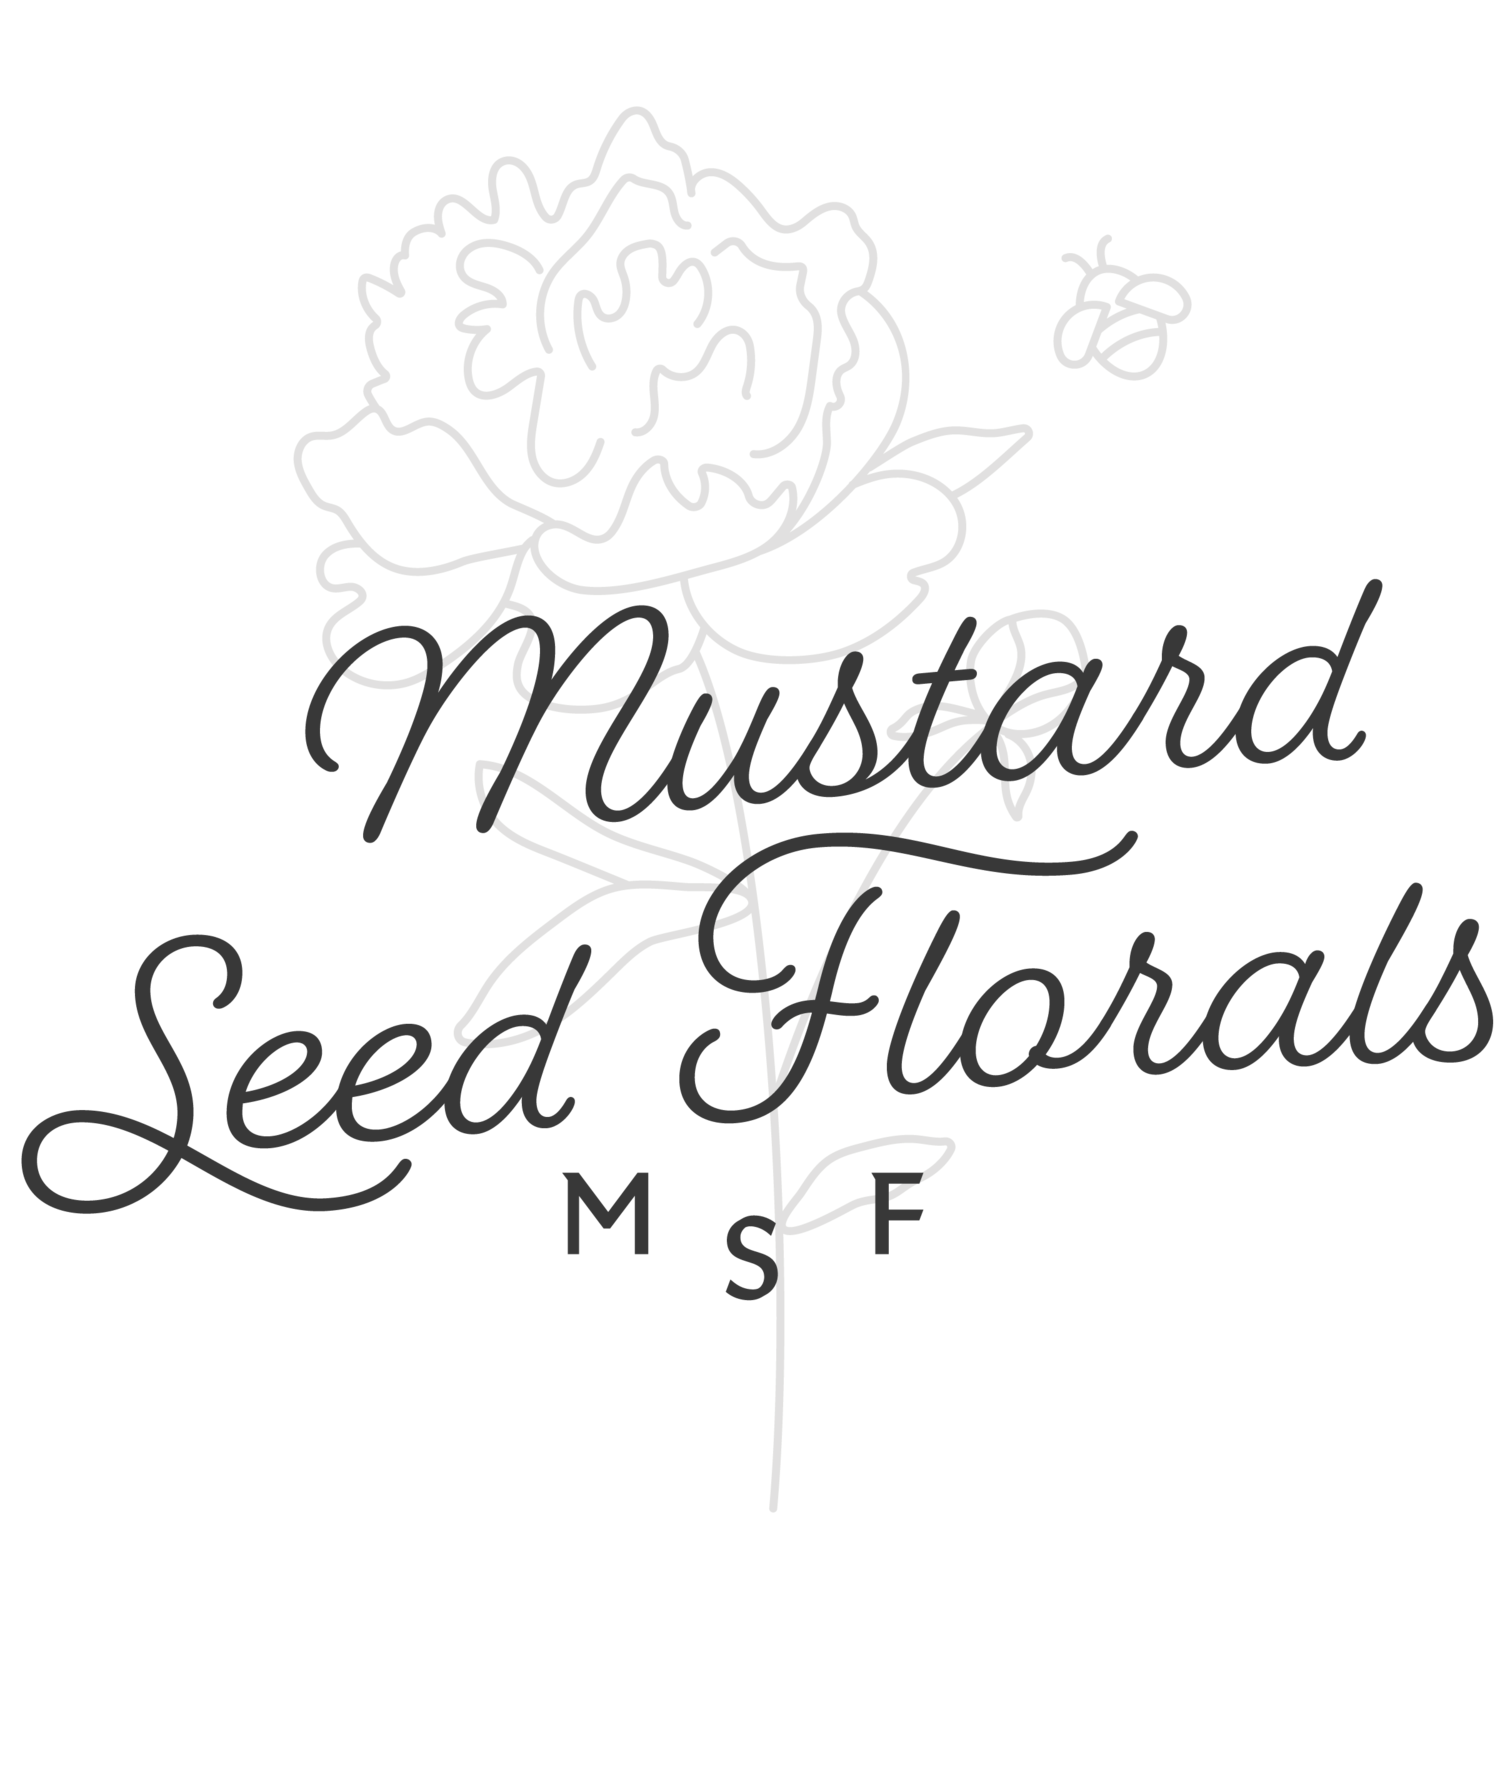 Mustard Seed Floral